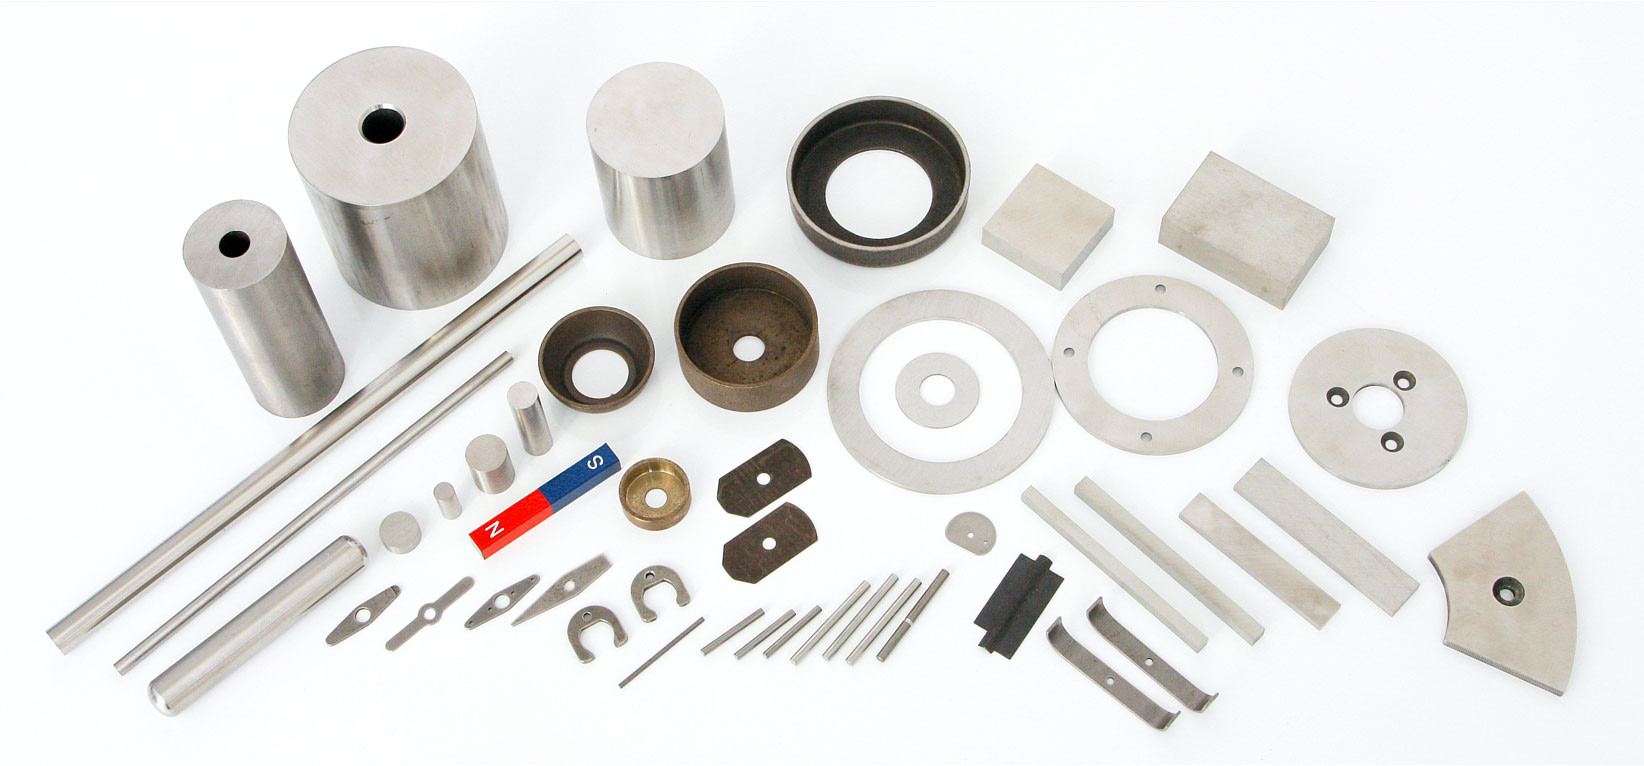 Typical forms and shapes of Iron Chrome Cobalt Magnets